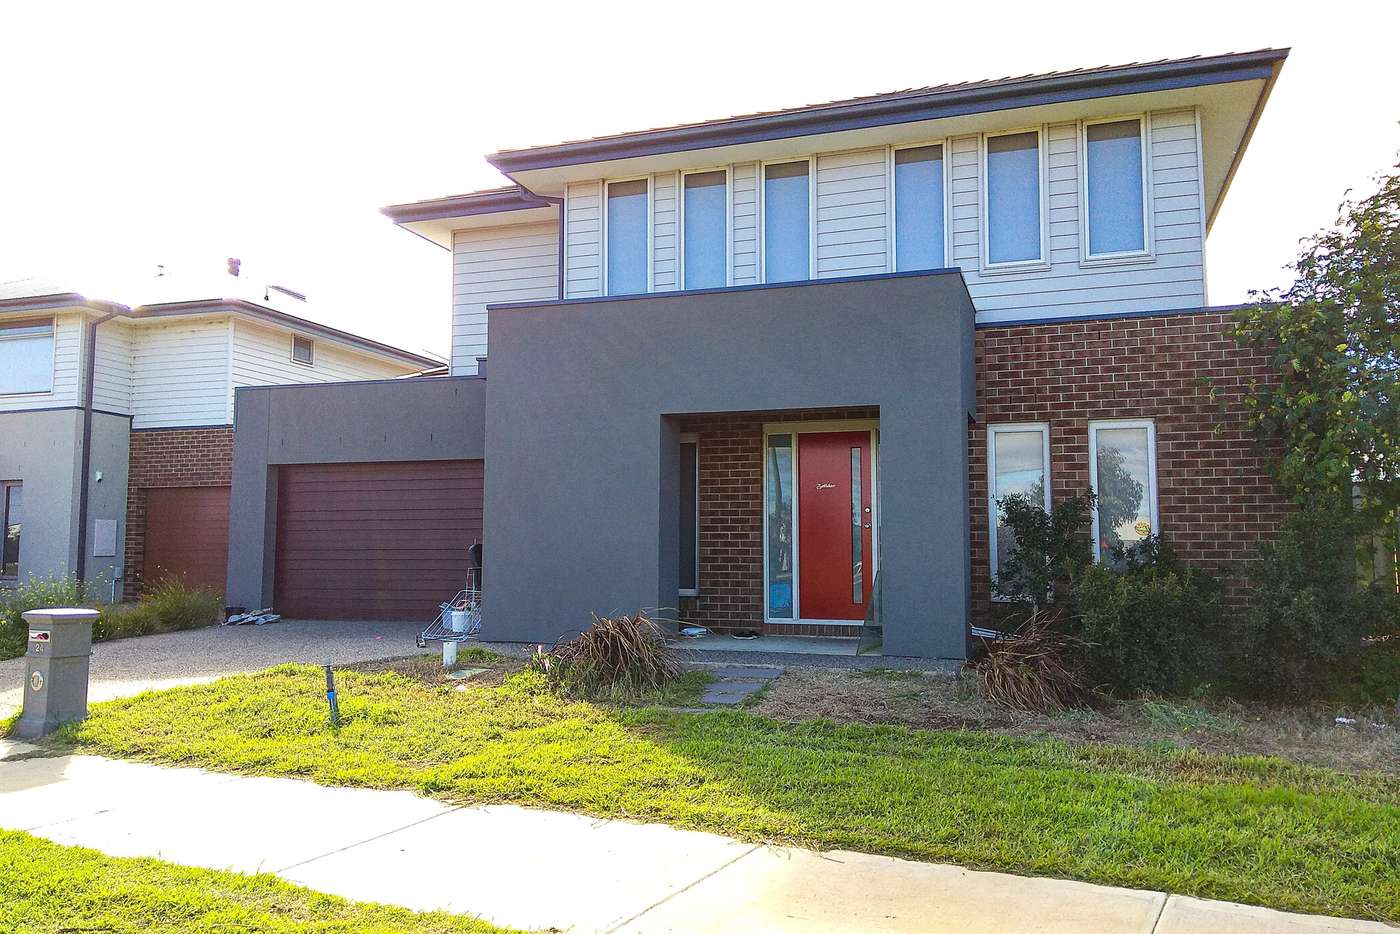 Main view of Homely house listing, 24 Ashwell Avenue, Williams Landing VIC 3027